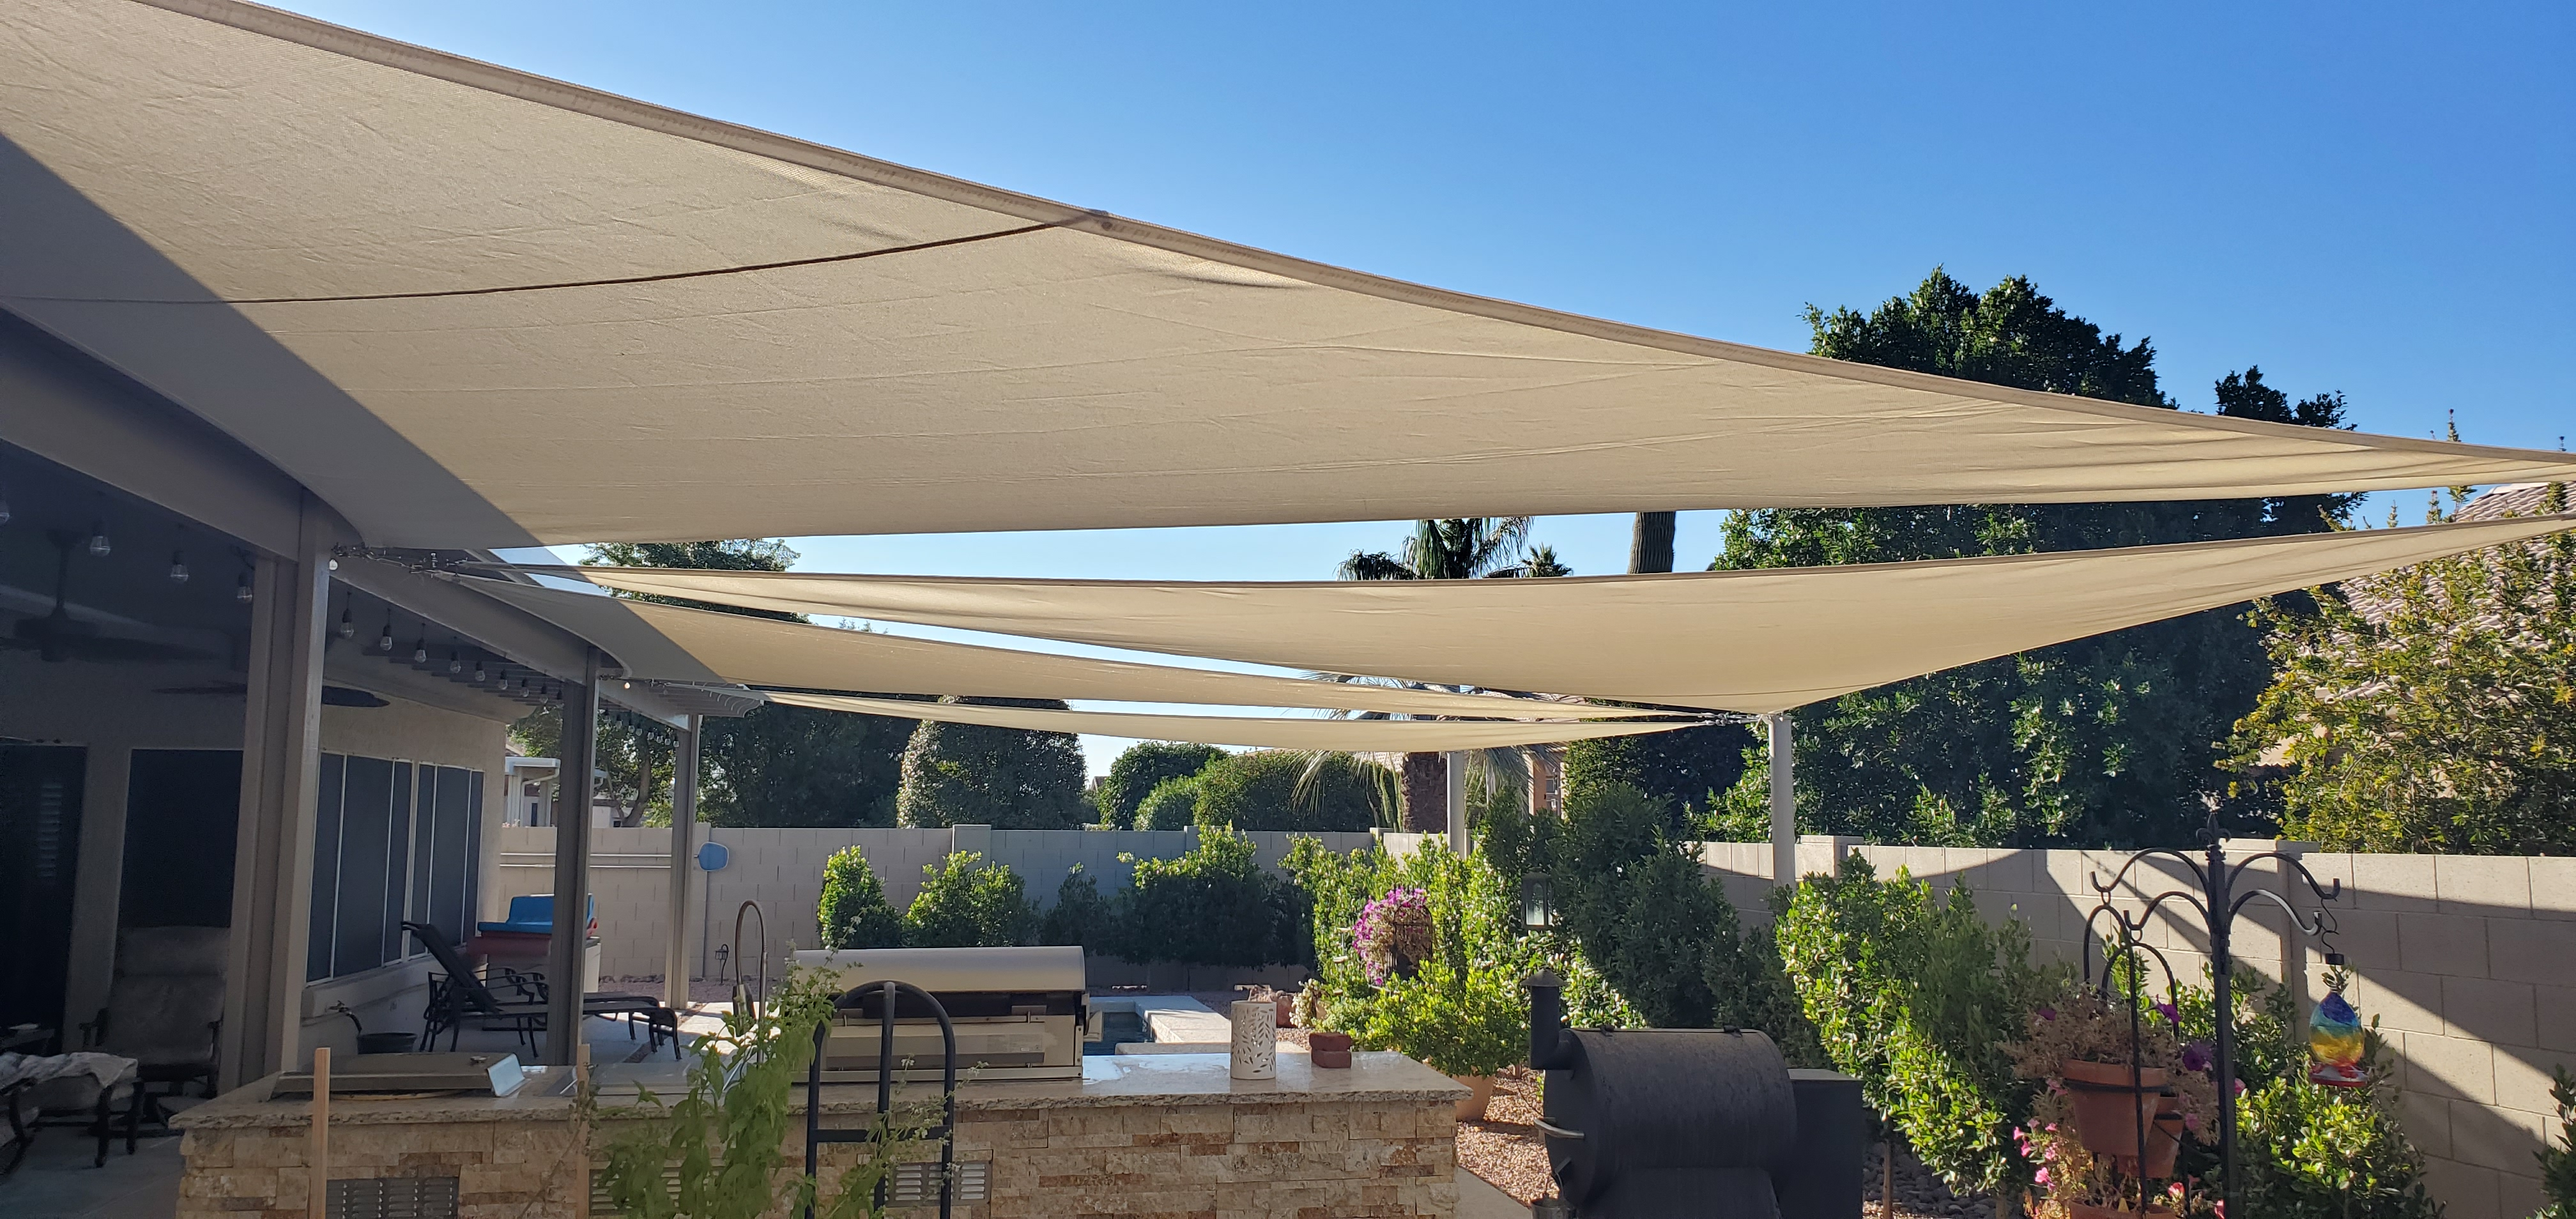 Sail shade World shade sail in Arizona, United States